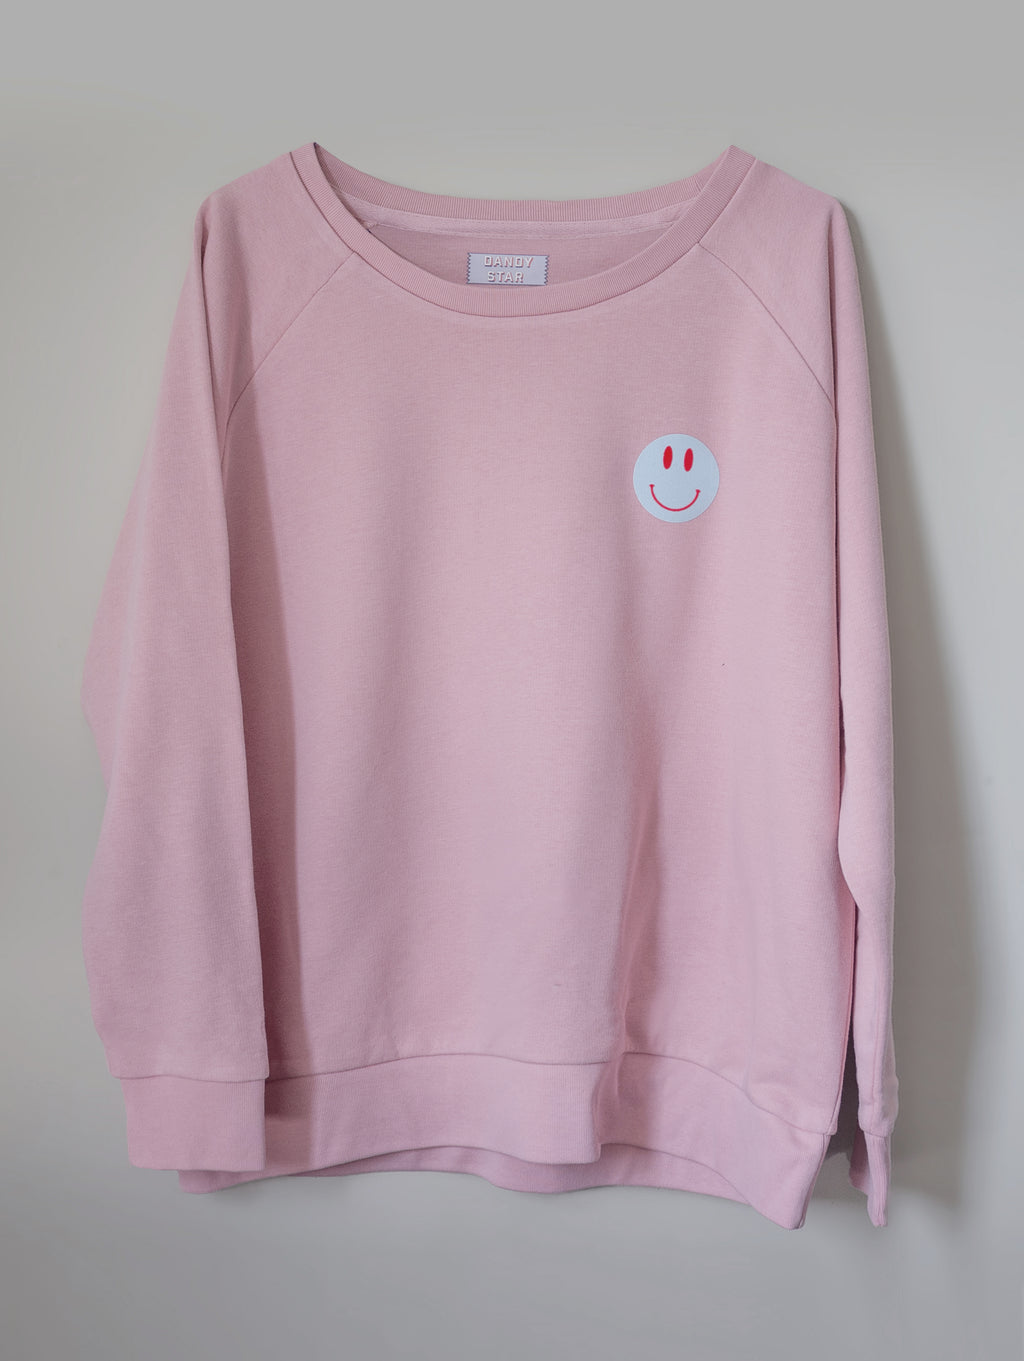 SMILEY CANDY SWEATSHIRT